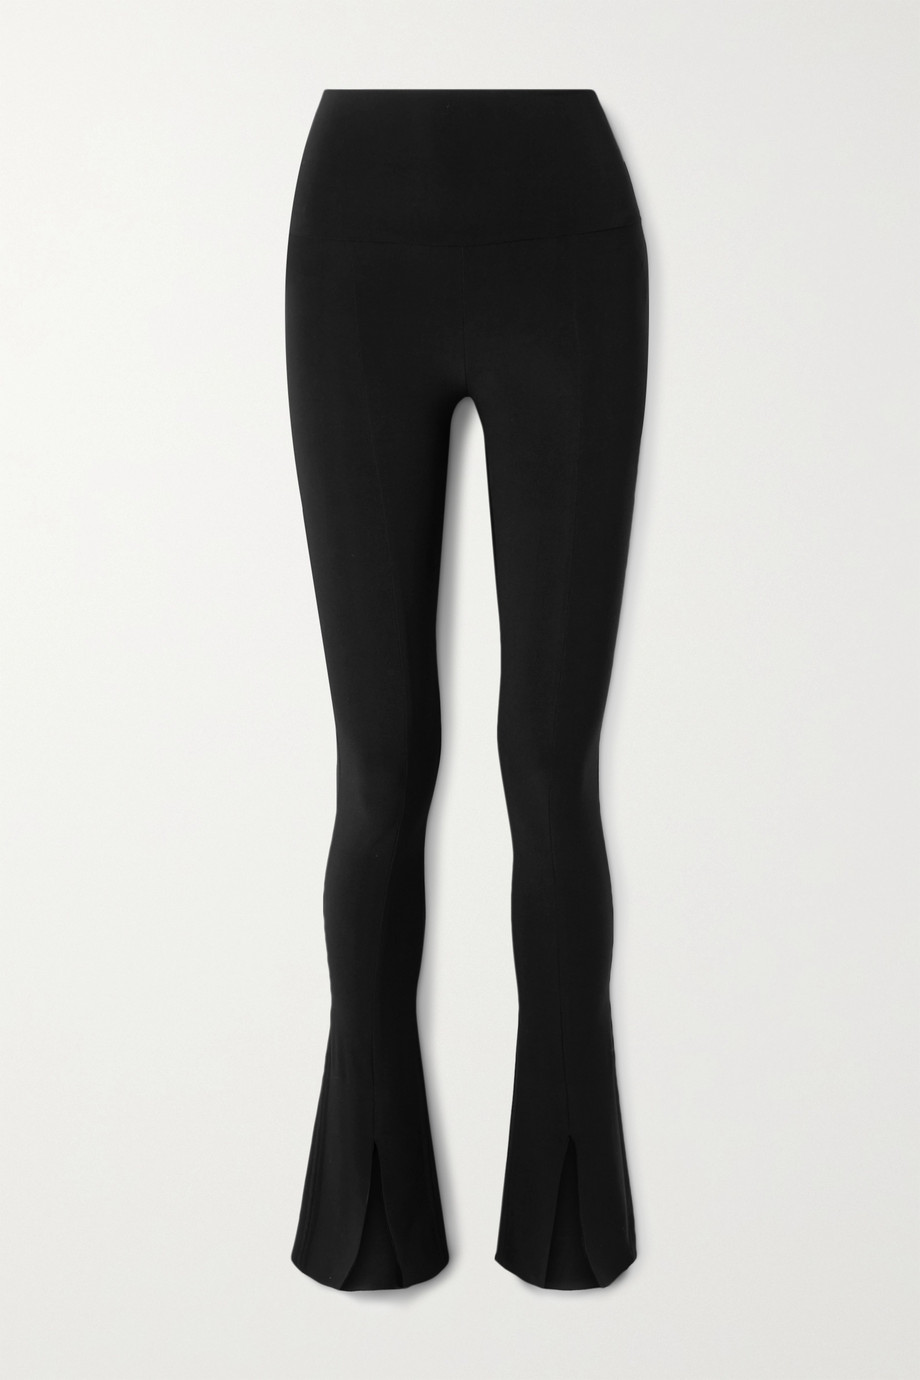 Norma Kamali Spat stretch-jersey flared leggings